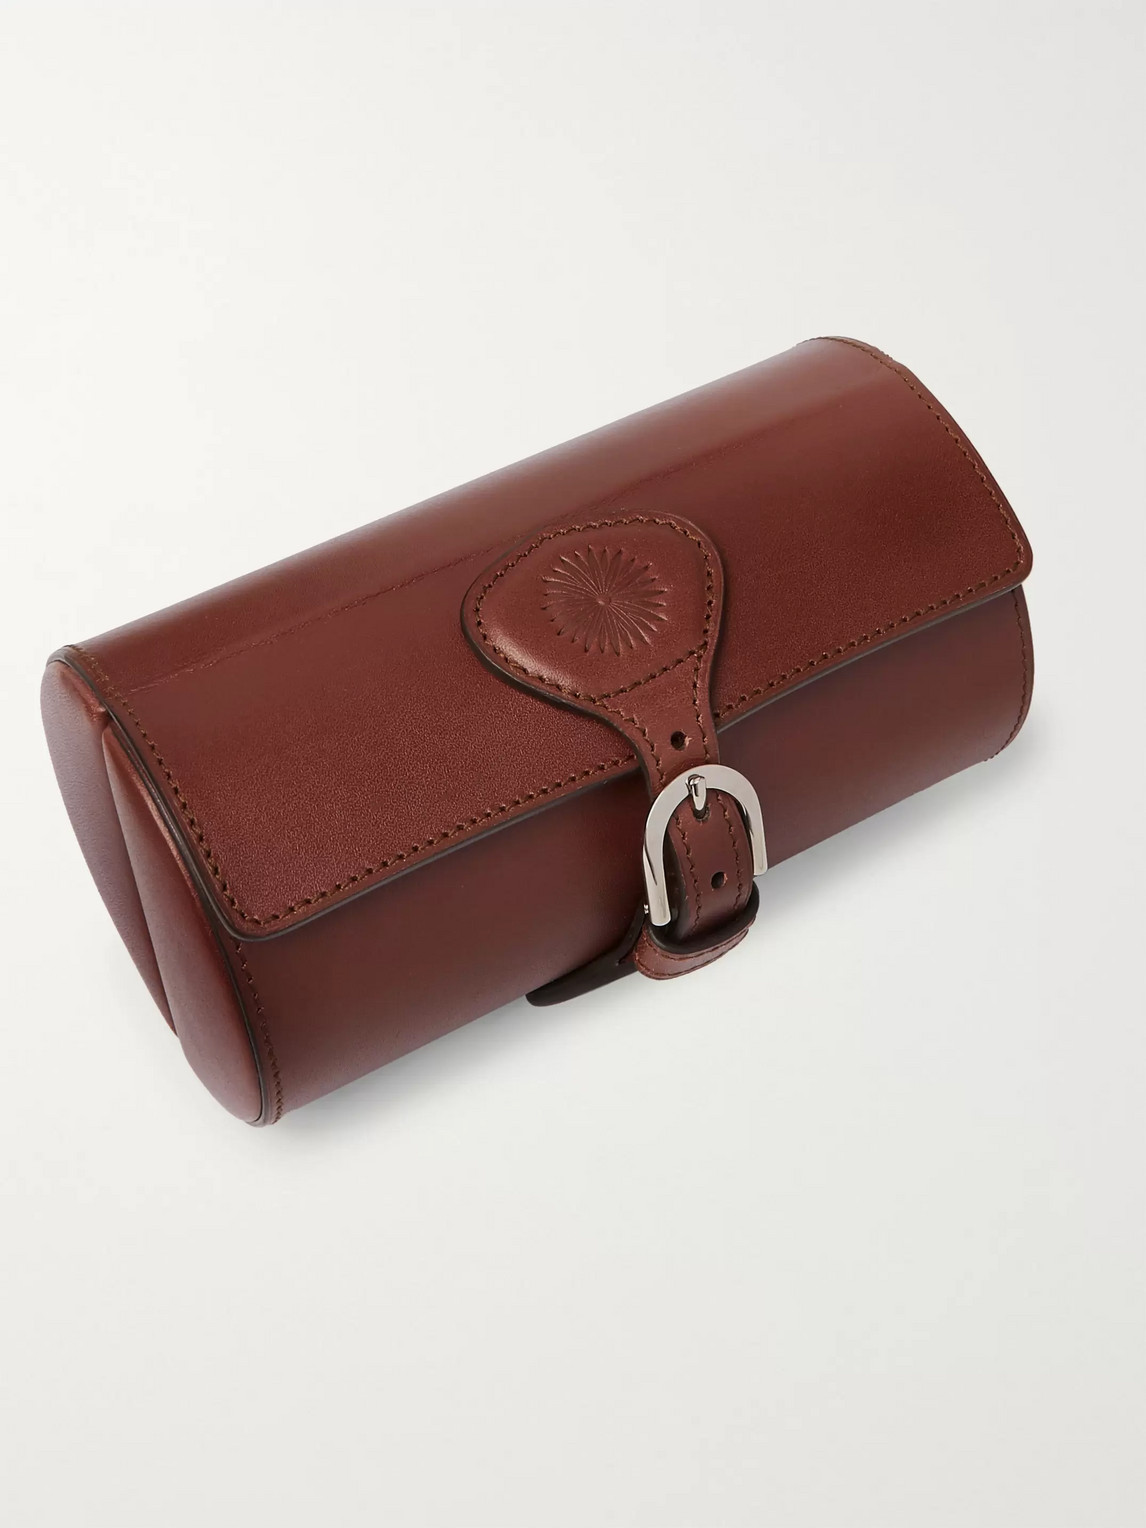 Purdey Travel Leather Double Watch Roll In Brown